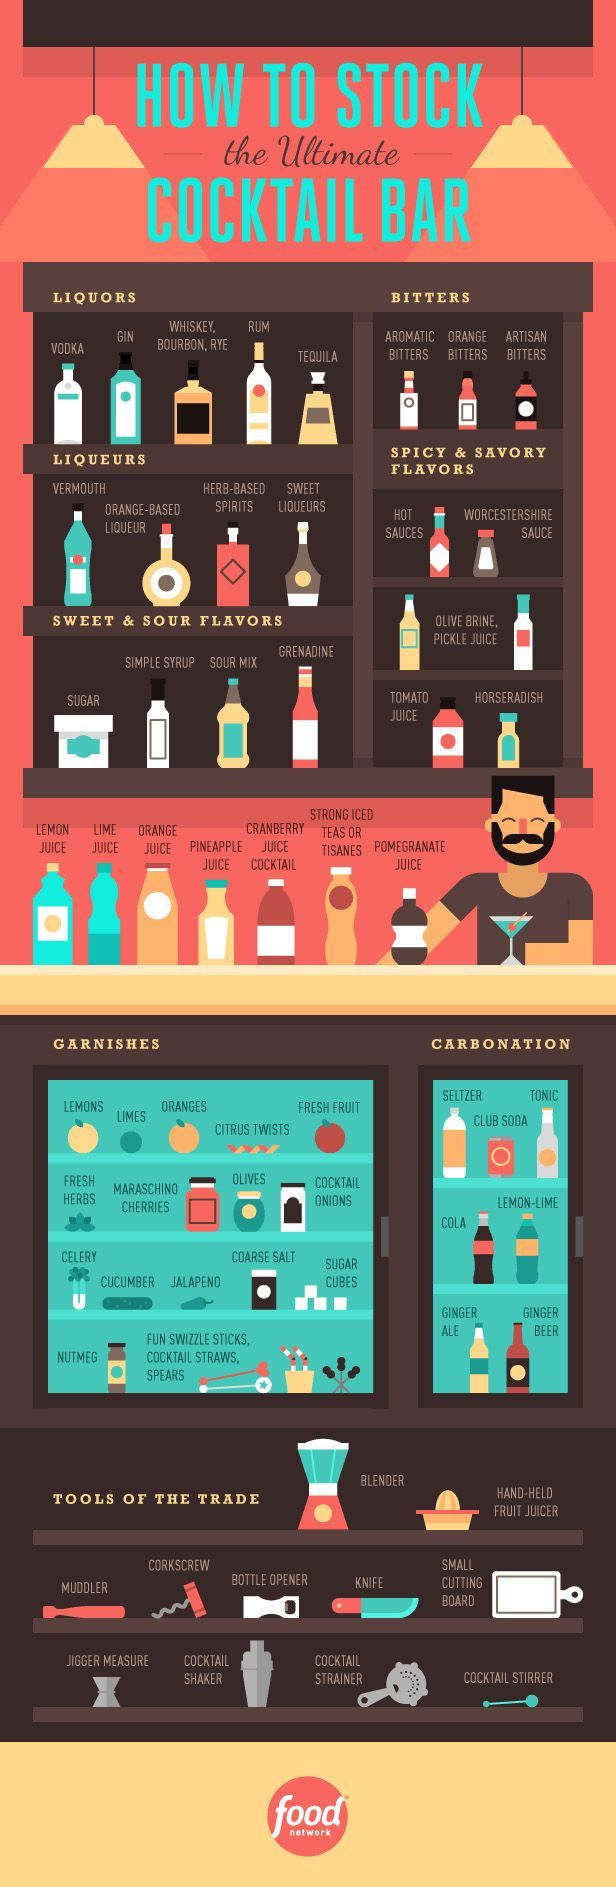 Stocking a bar doesn't have to break the bank. Start with the basics, and build from there. Assess your bar supplies each season and before each planned party. In the warmer months, think beer, white wine and light spirits.